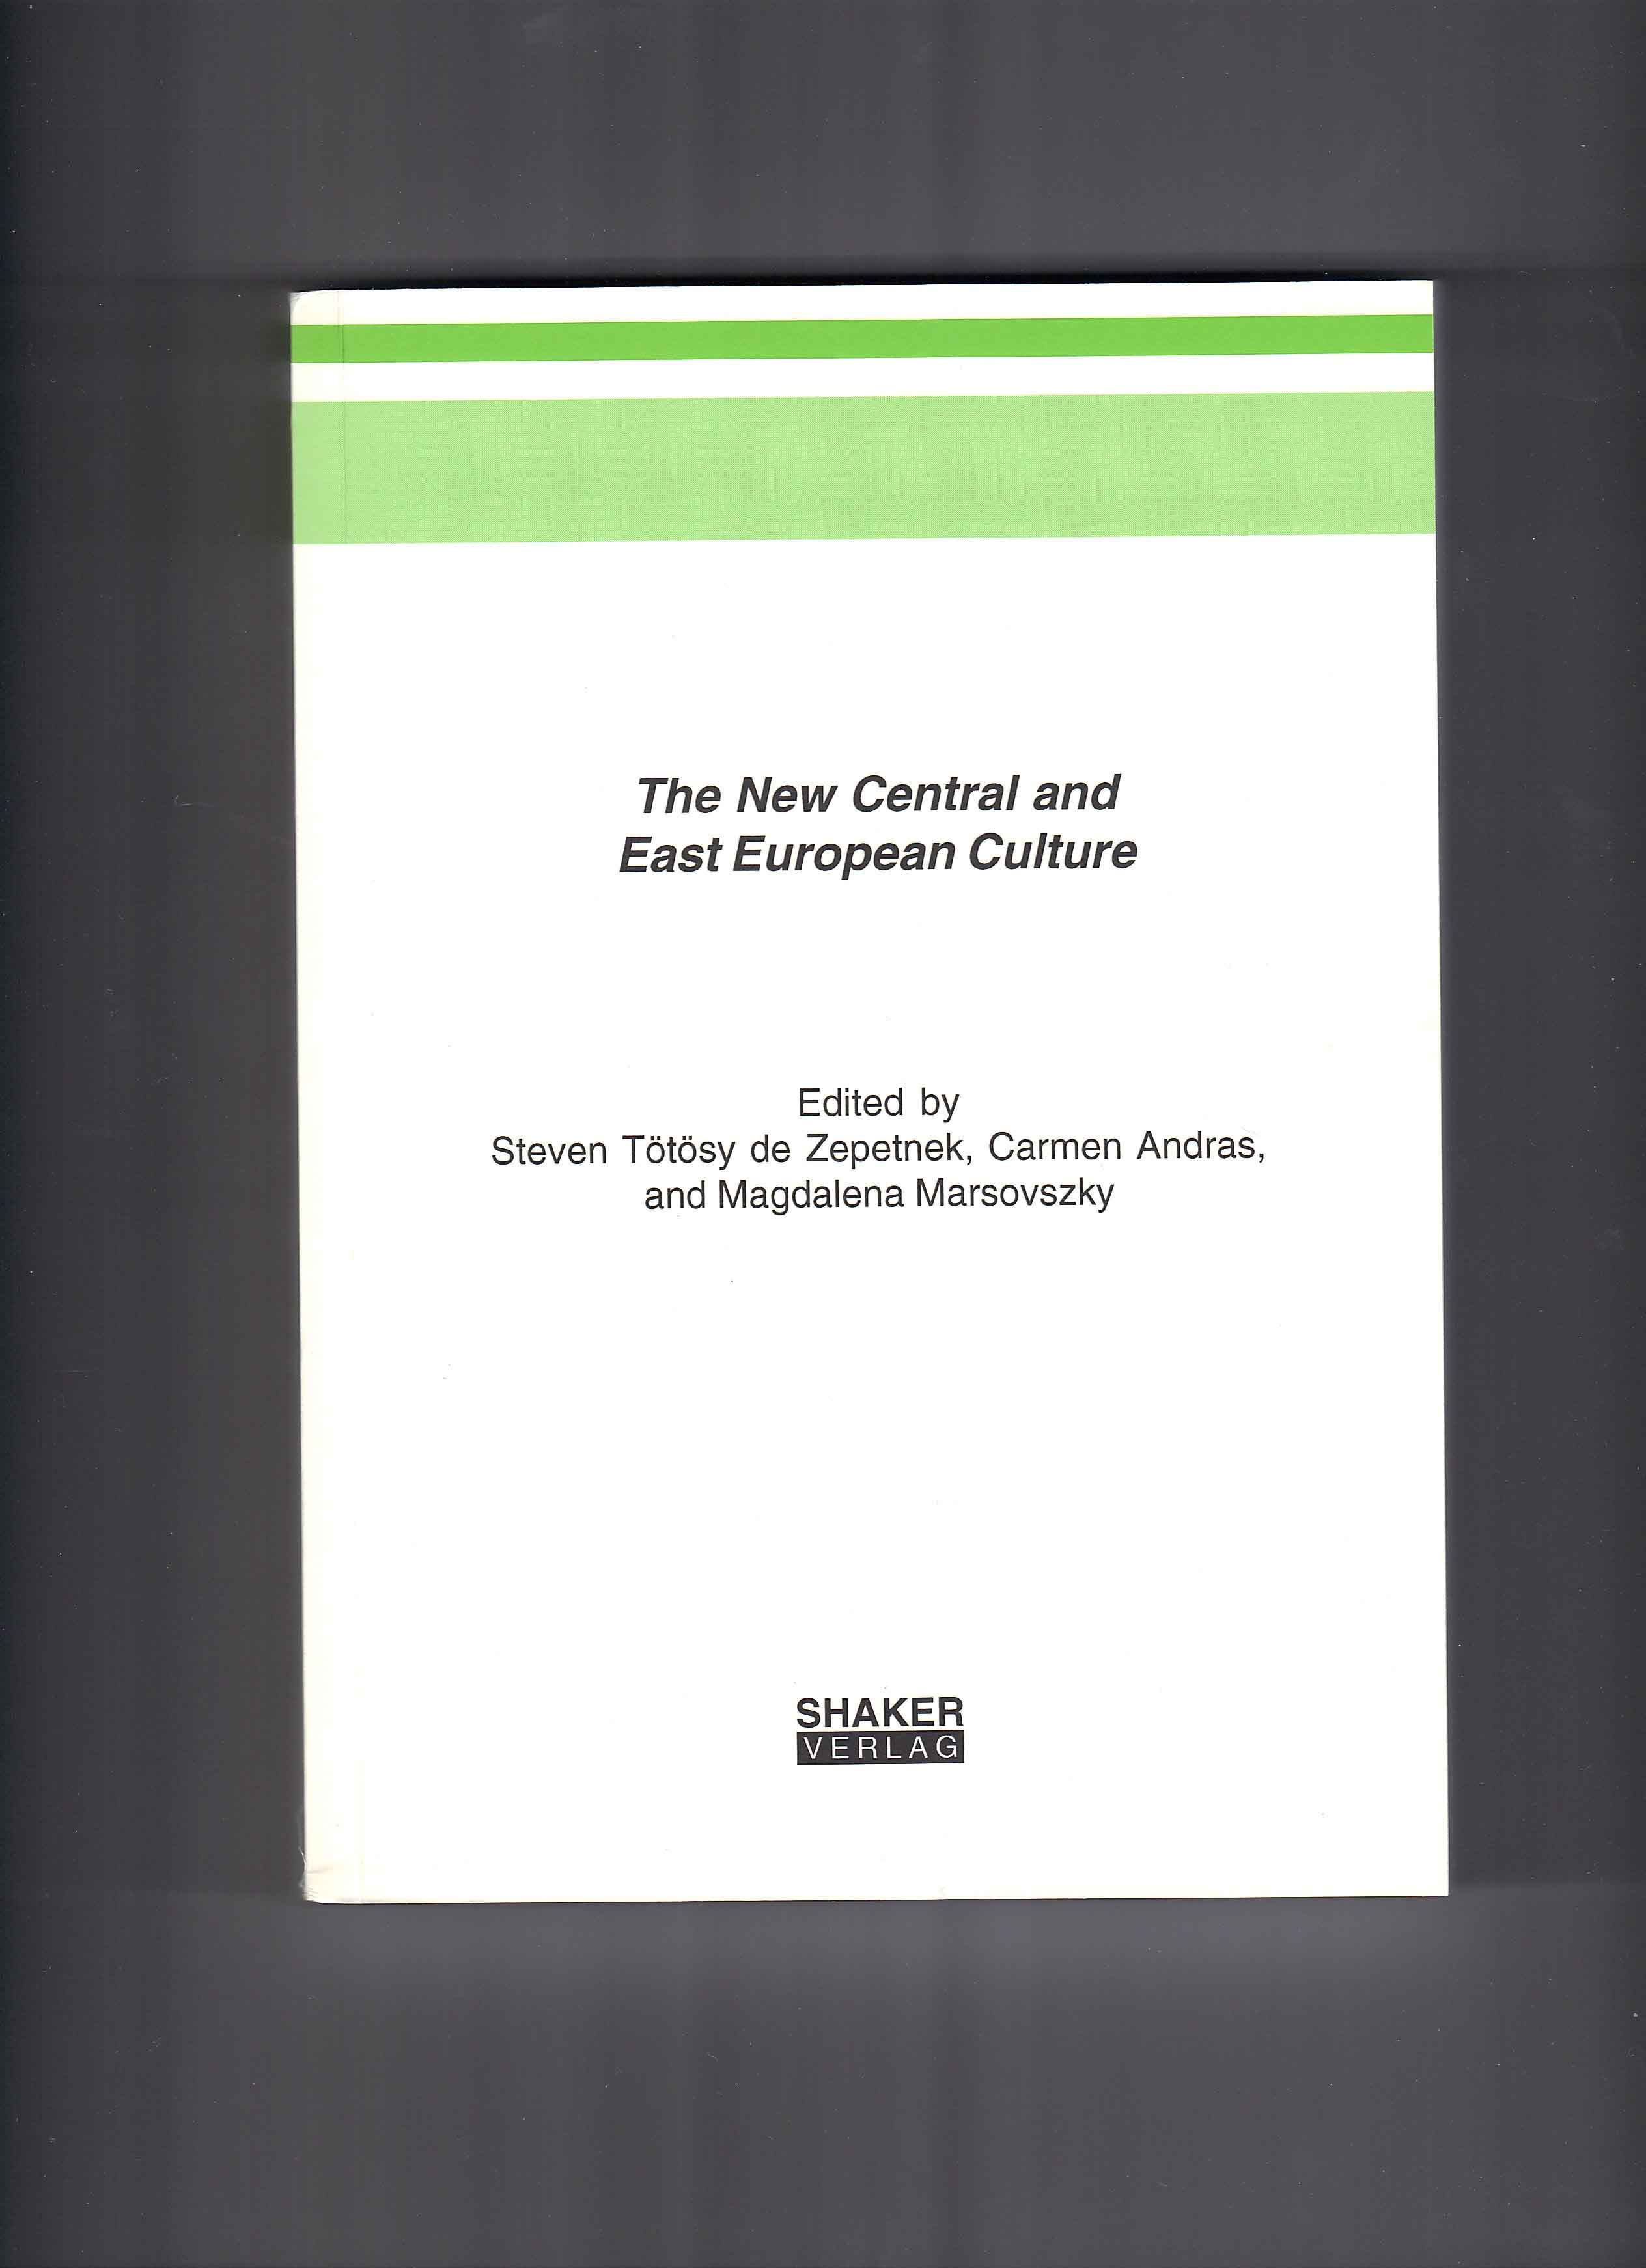 The New Central and East European Culture. Ed. Steven T�t�sy de Zepetnek, Carmen Andras, and Magdalena Marsovszky. Aachen: Shaker Press, 2006.